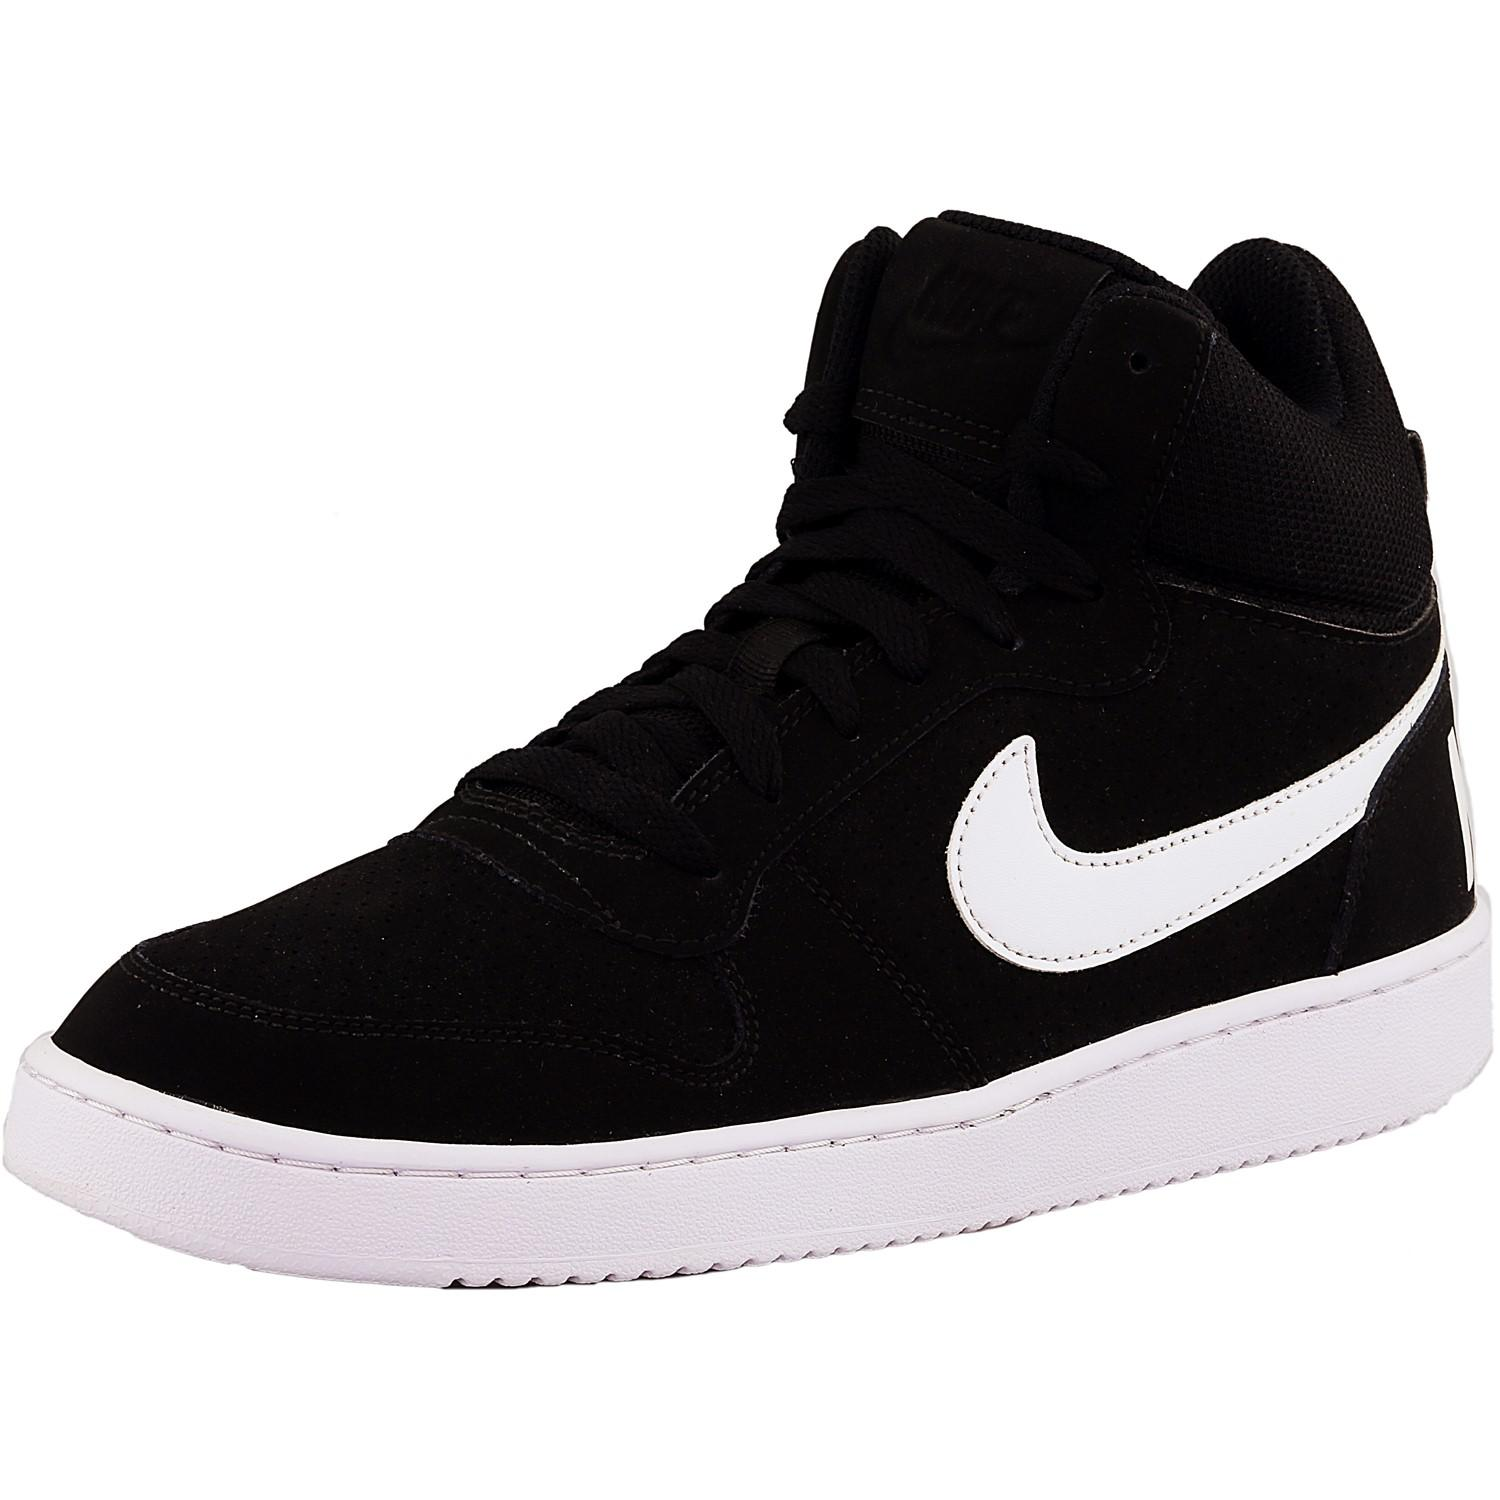 100% authentic 2d2ed 4172a Lyst - Nike Court Borough Mid 010 Mid-top Leather Basketball